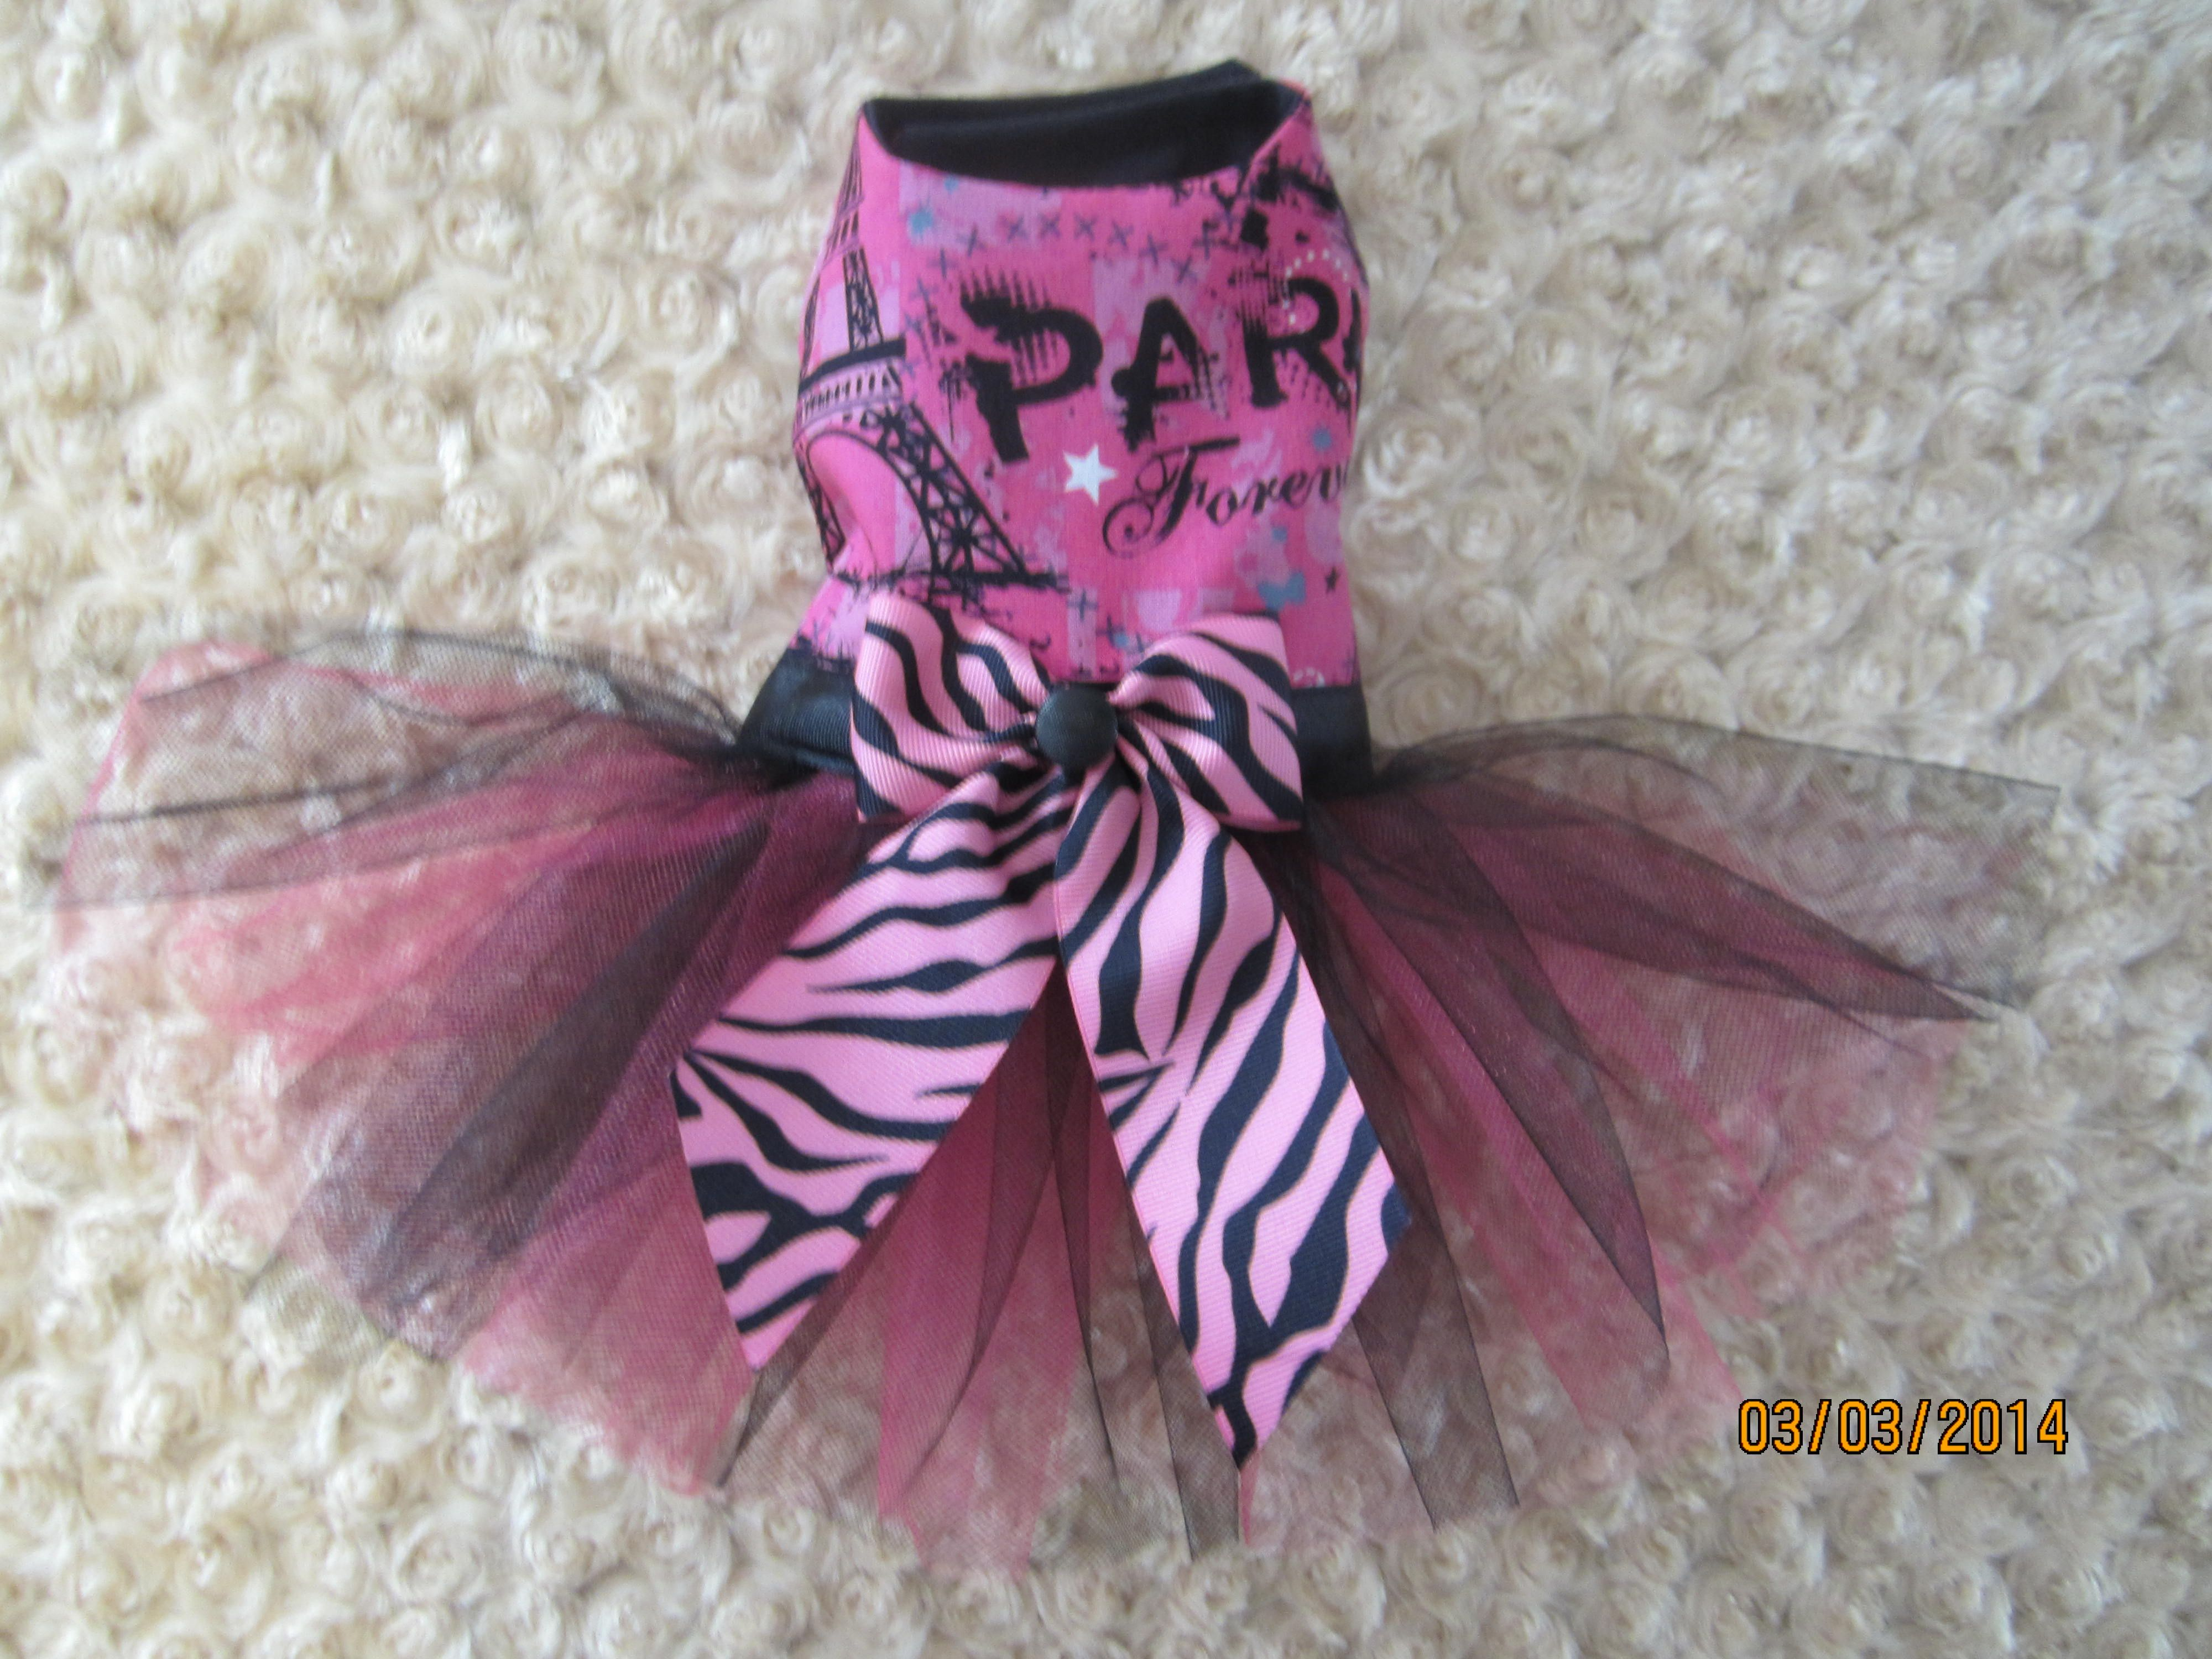 Paris Forever Tutu Dog Dress. Custom hand-made small breed dog dresses and harnesses. Made in Michigan : )